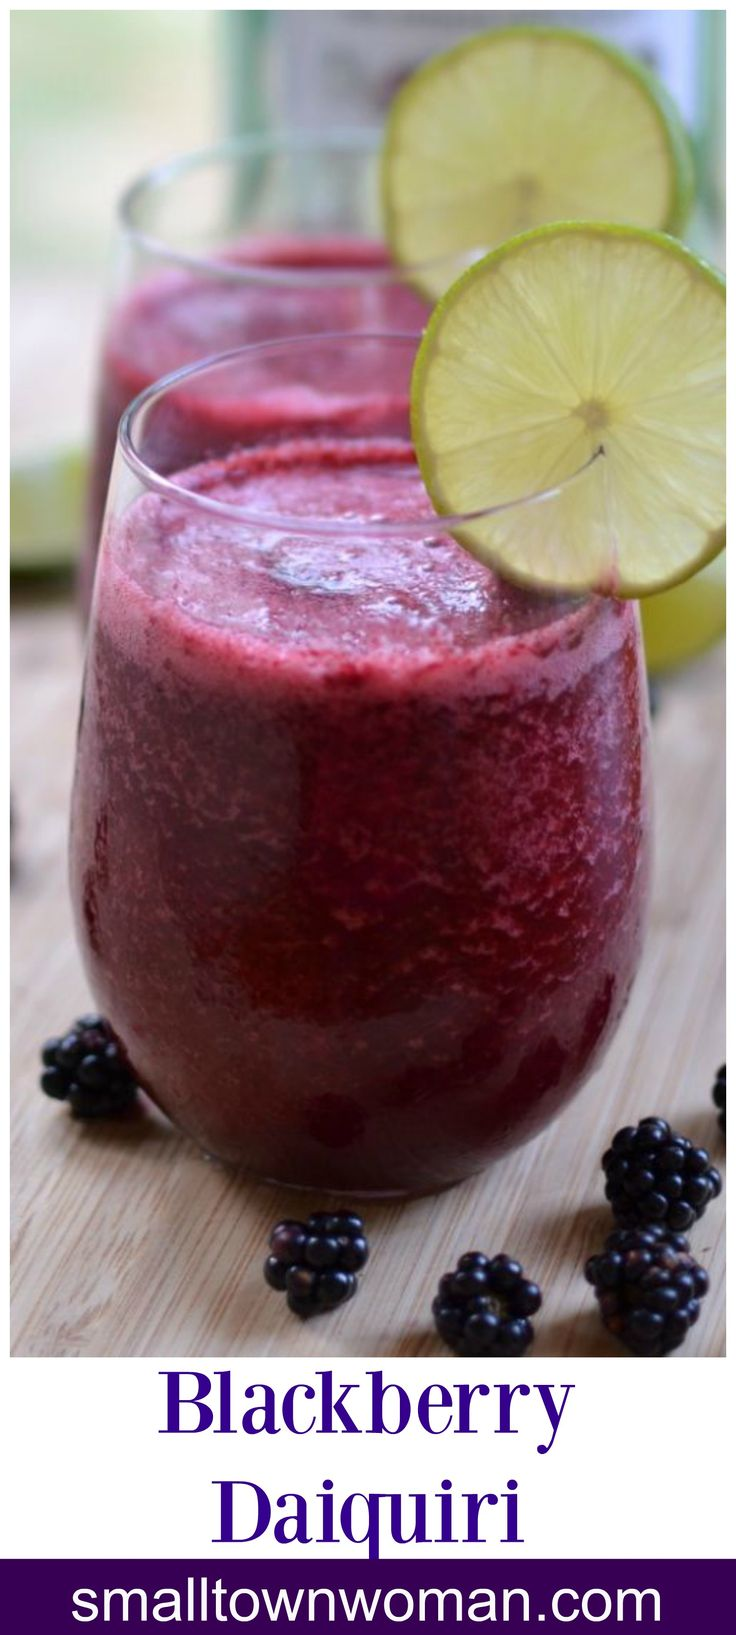 The dark blue color ensures blackberries have one of the highest antioxidant levels of all fruits. So go ahead and treat yourself to one of natures finest fruits.  You deserve a little rest and relaxation.